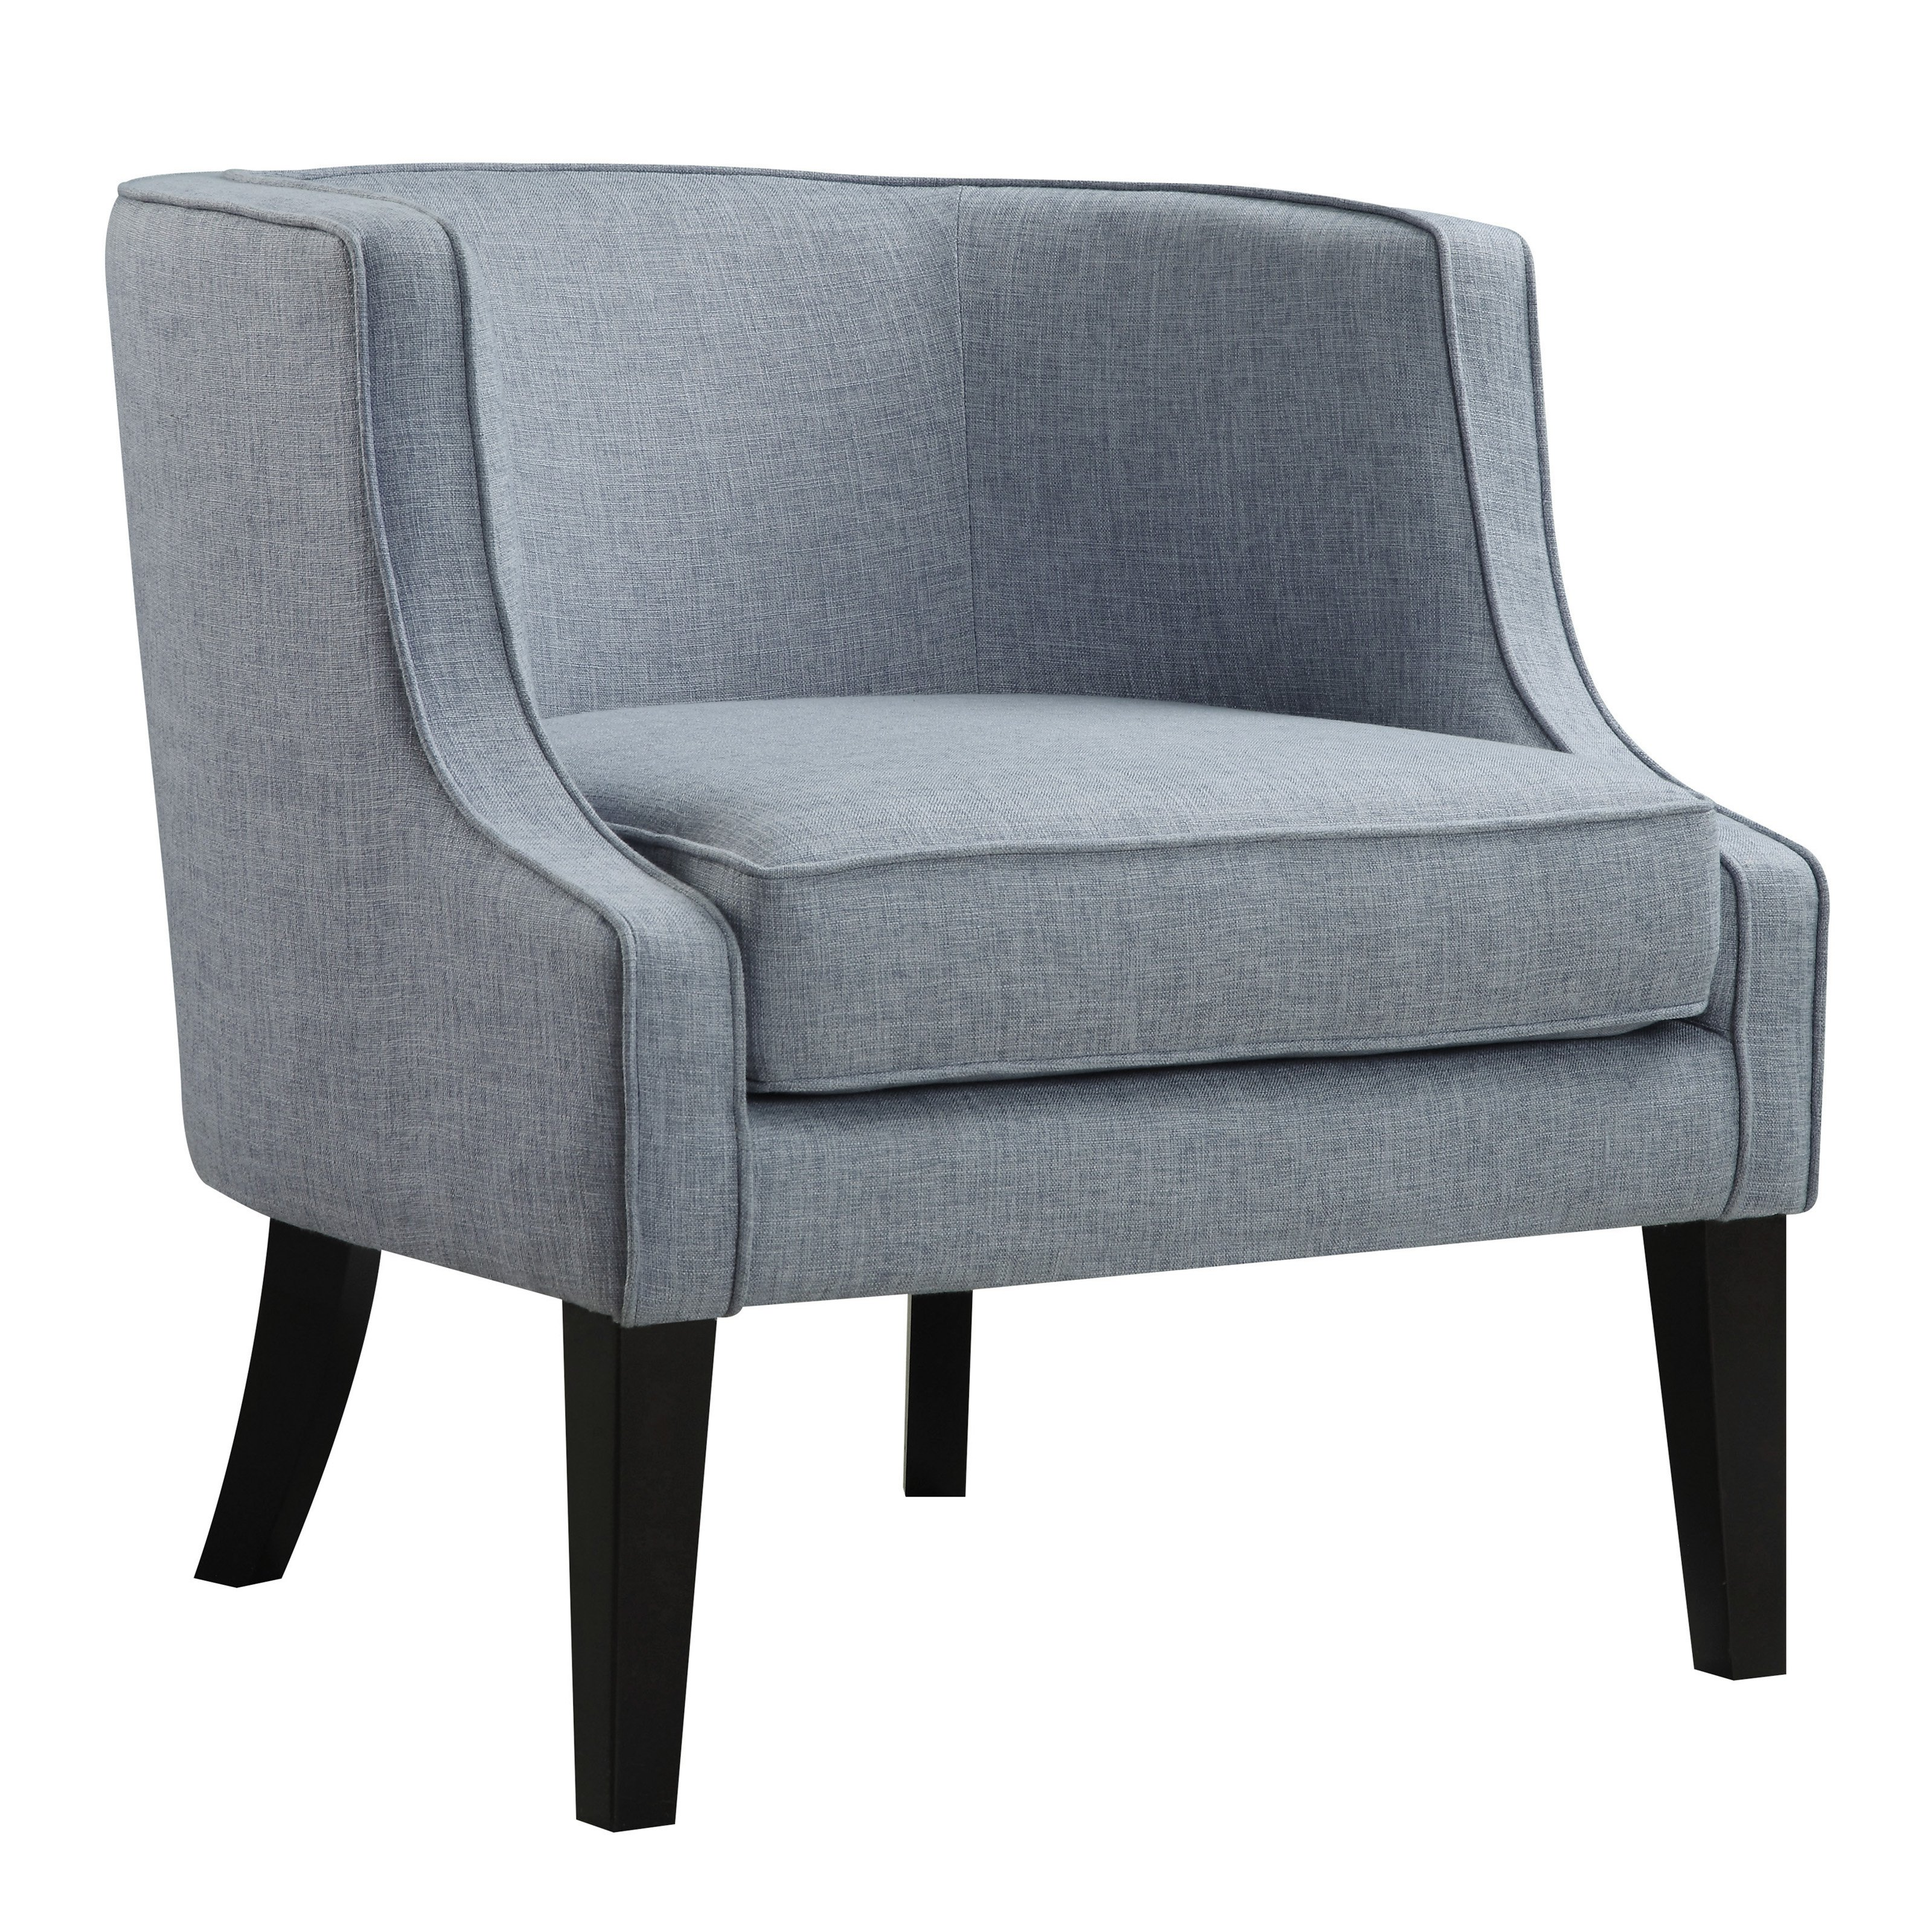 PRI Brianne Tide Upholstered Barrel Chair